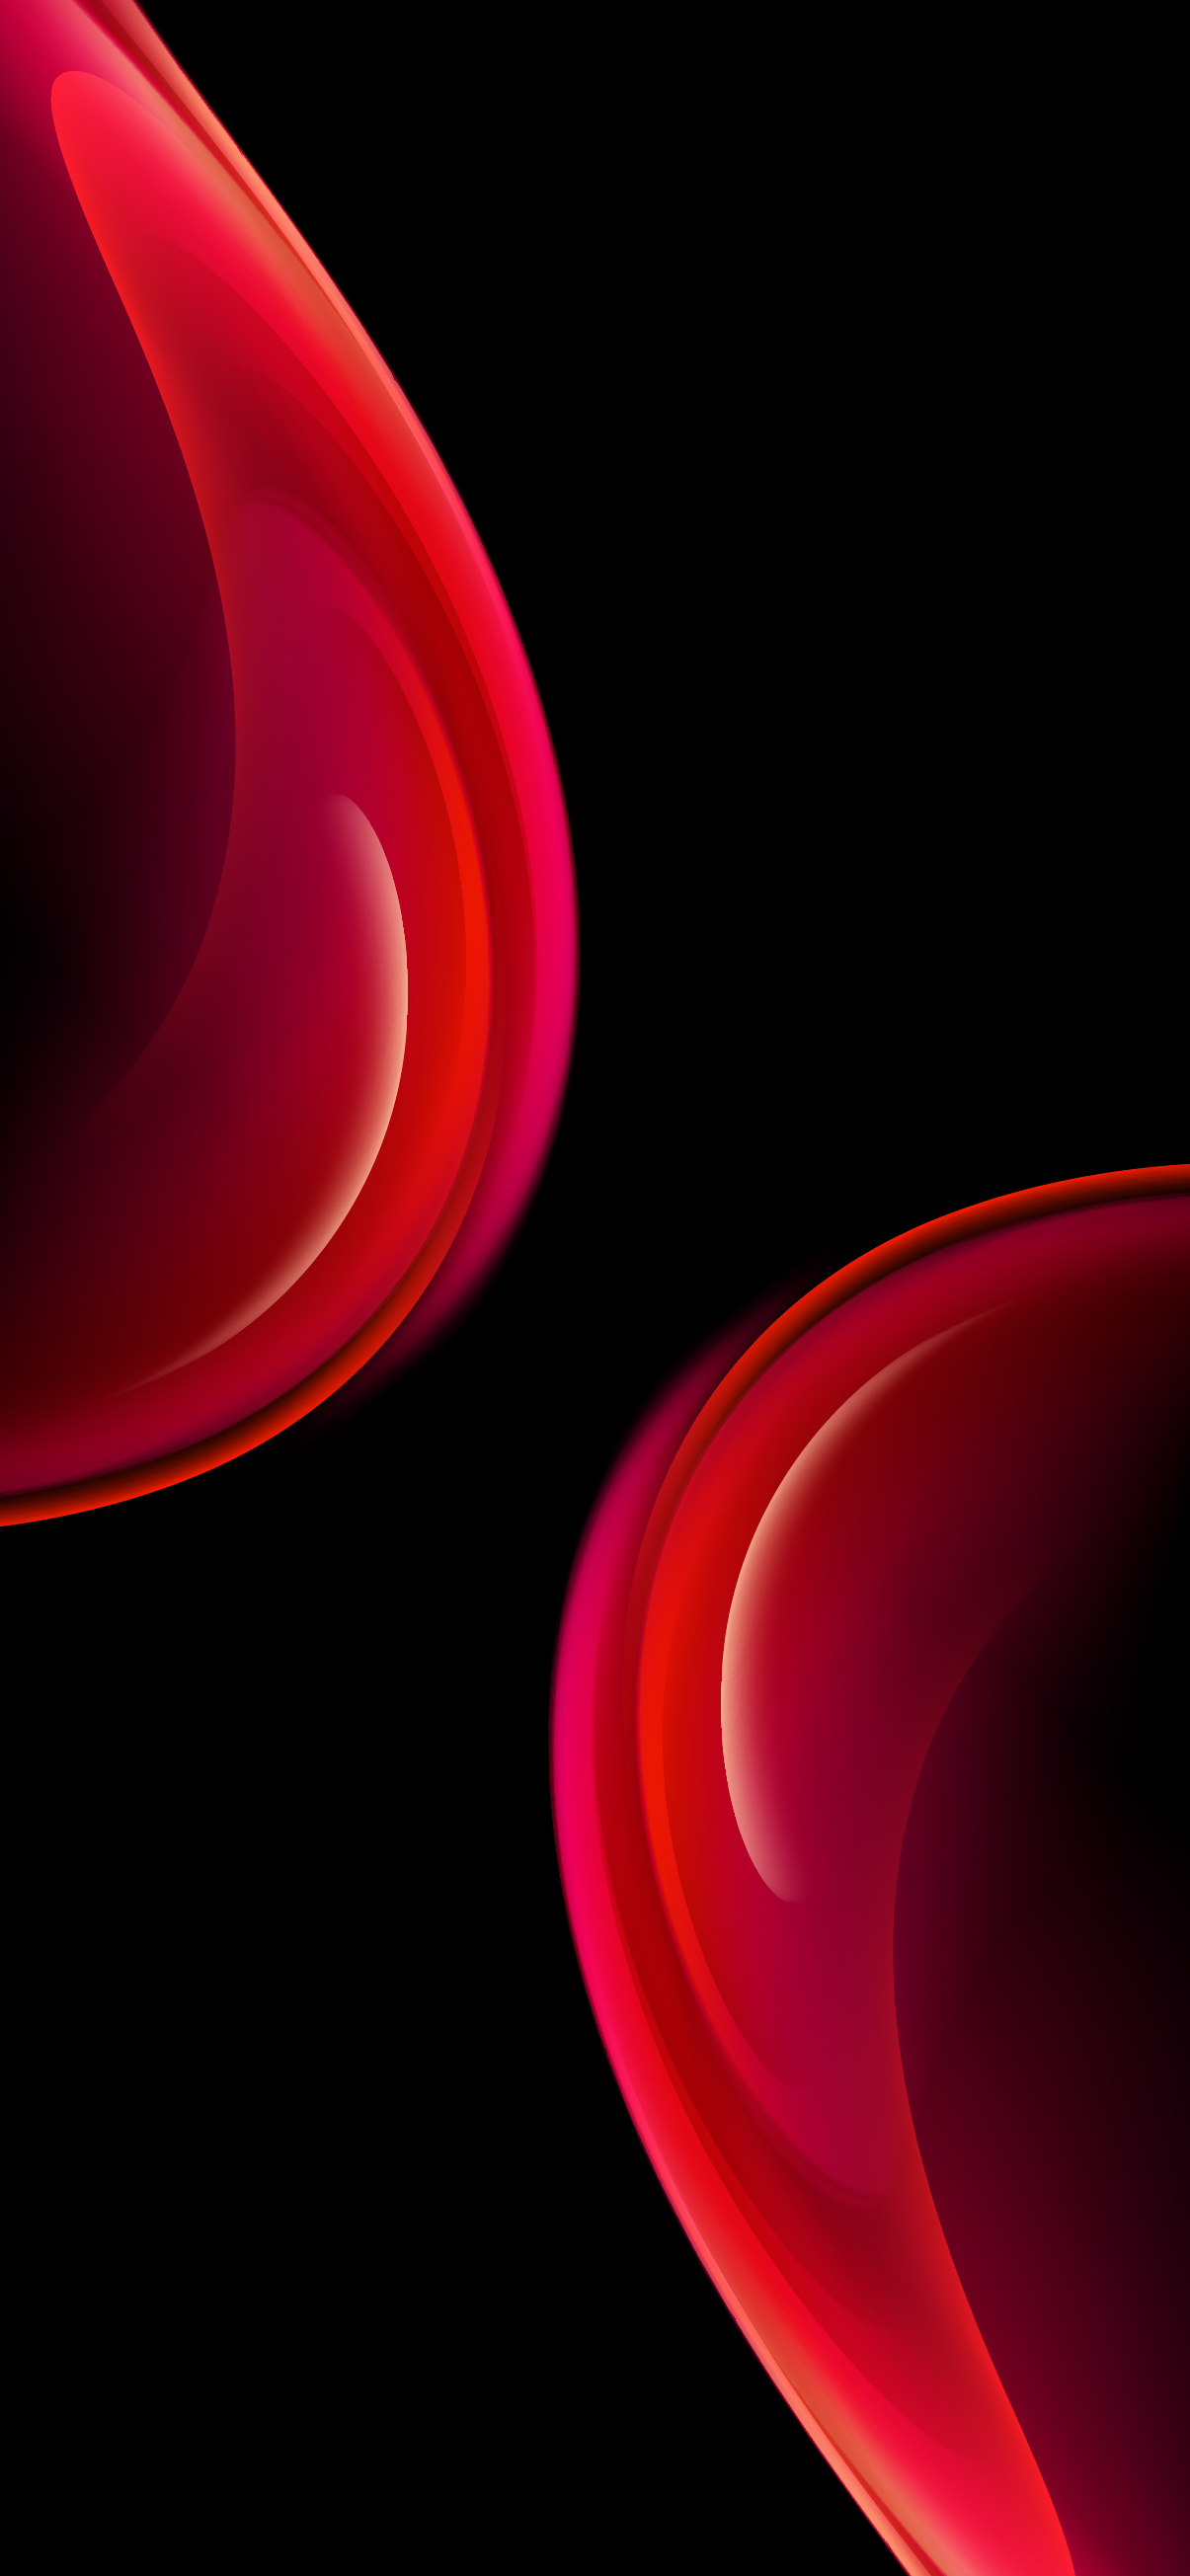 wallpaper iphone red oled hd 4k